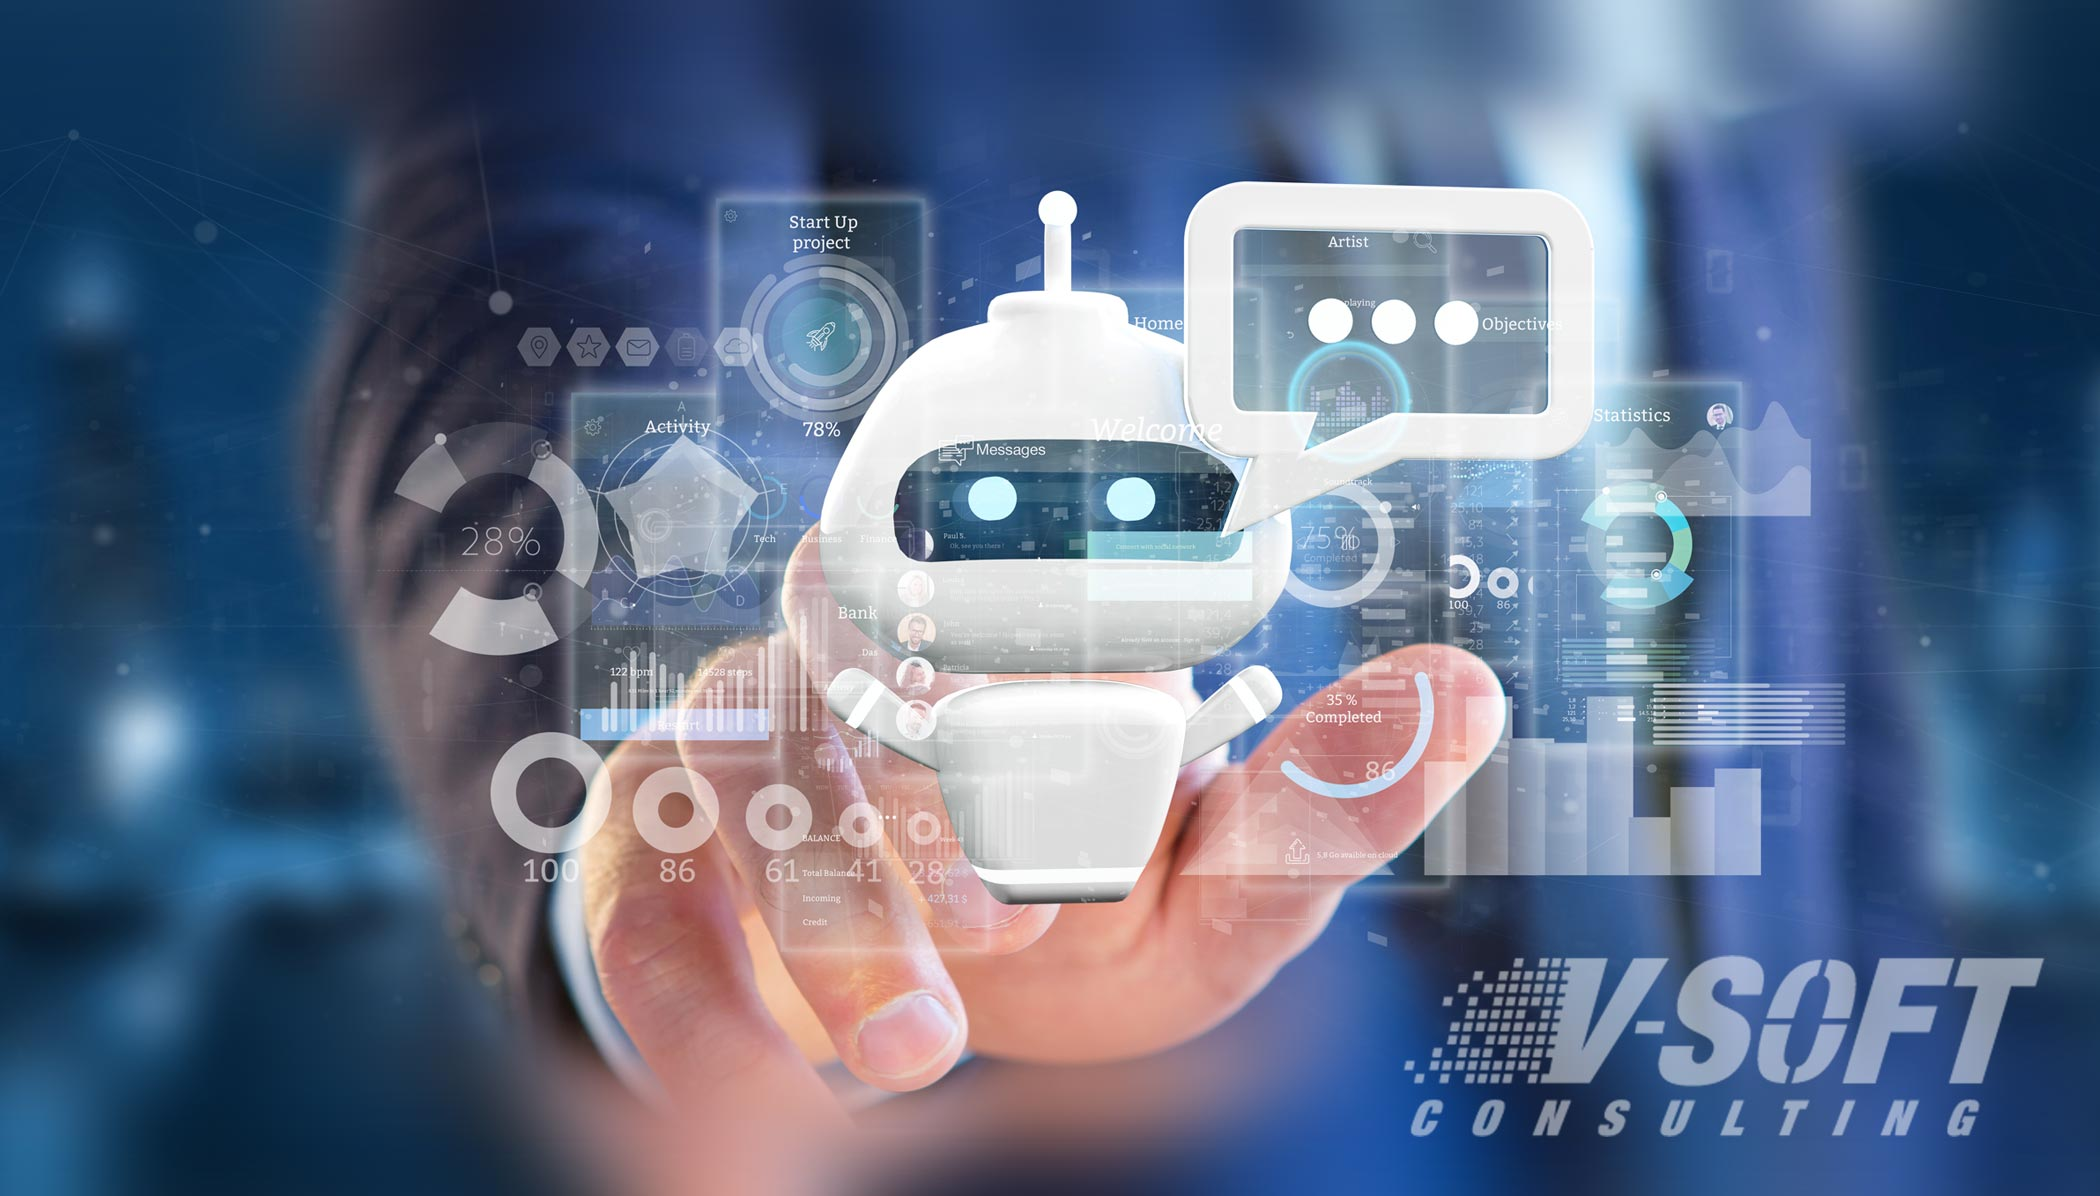 4 Considerations for Exceptional Chatbot Design